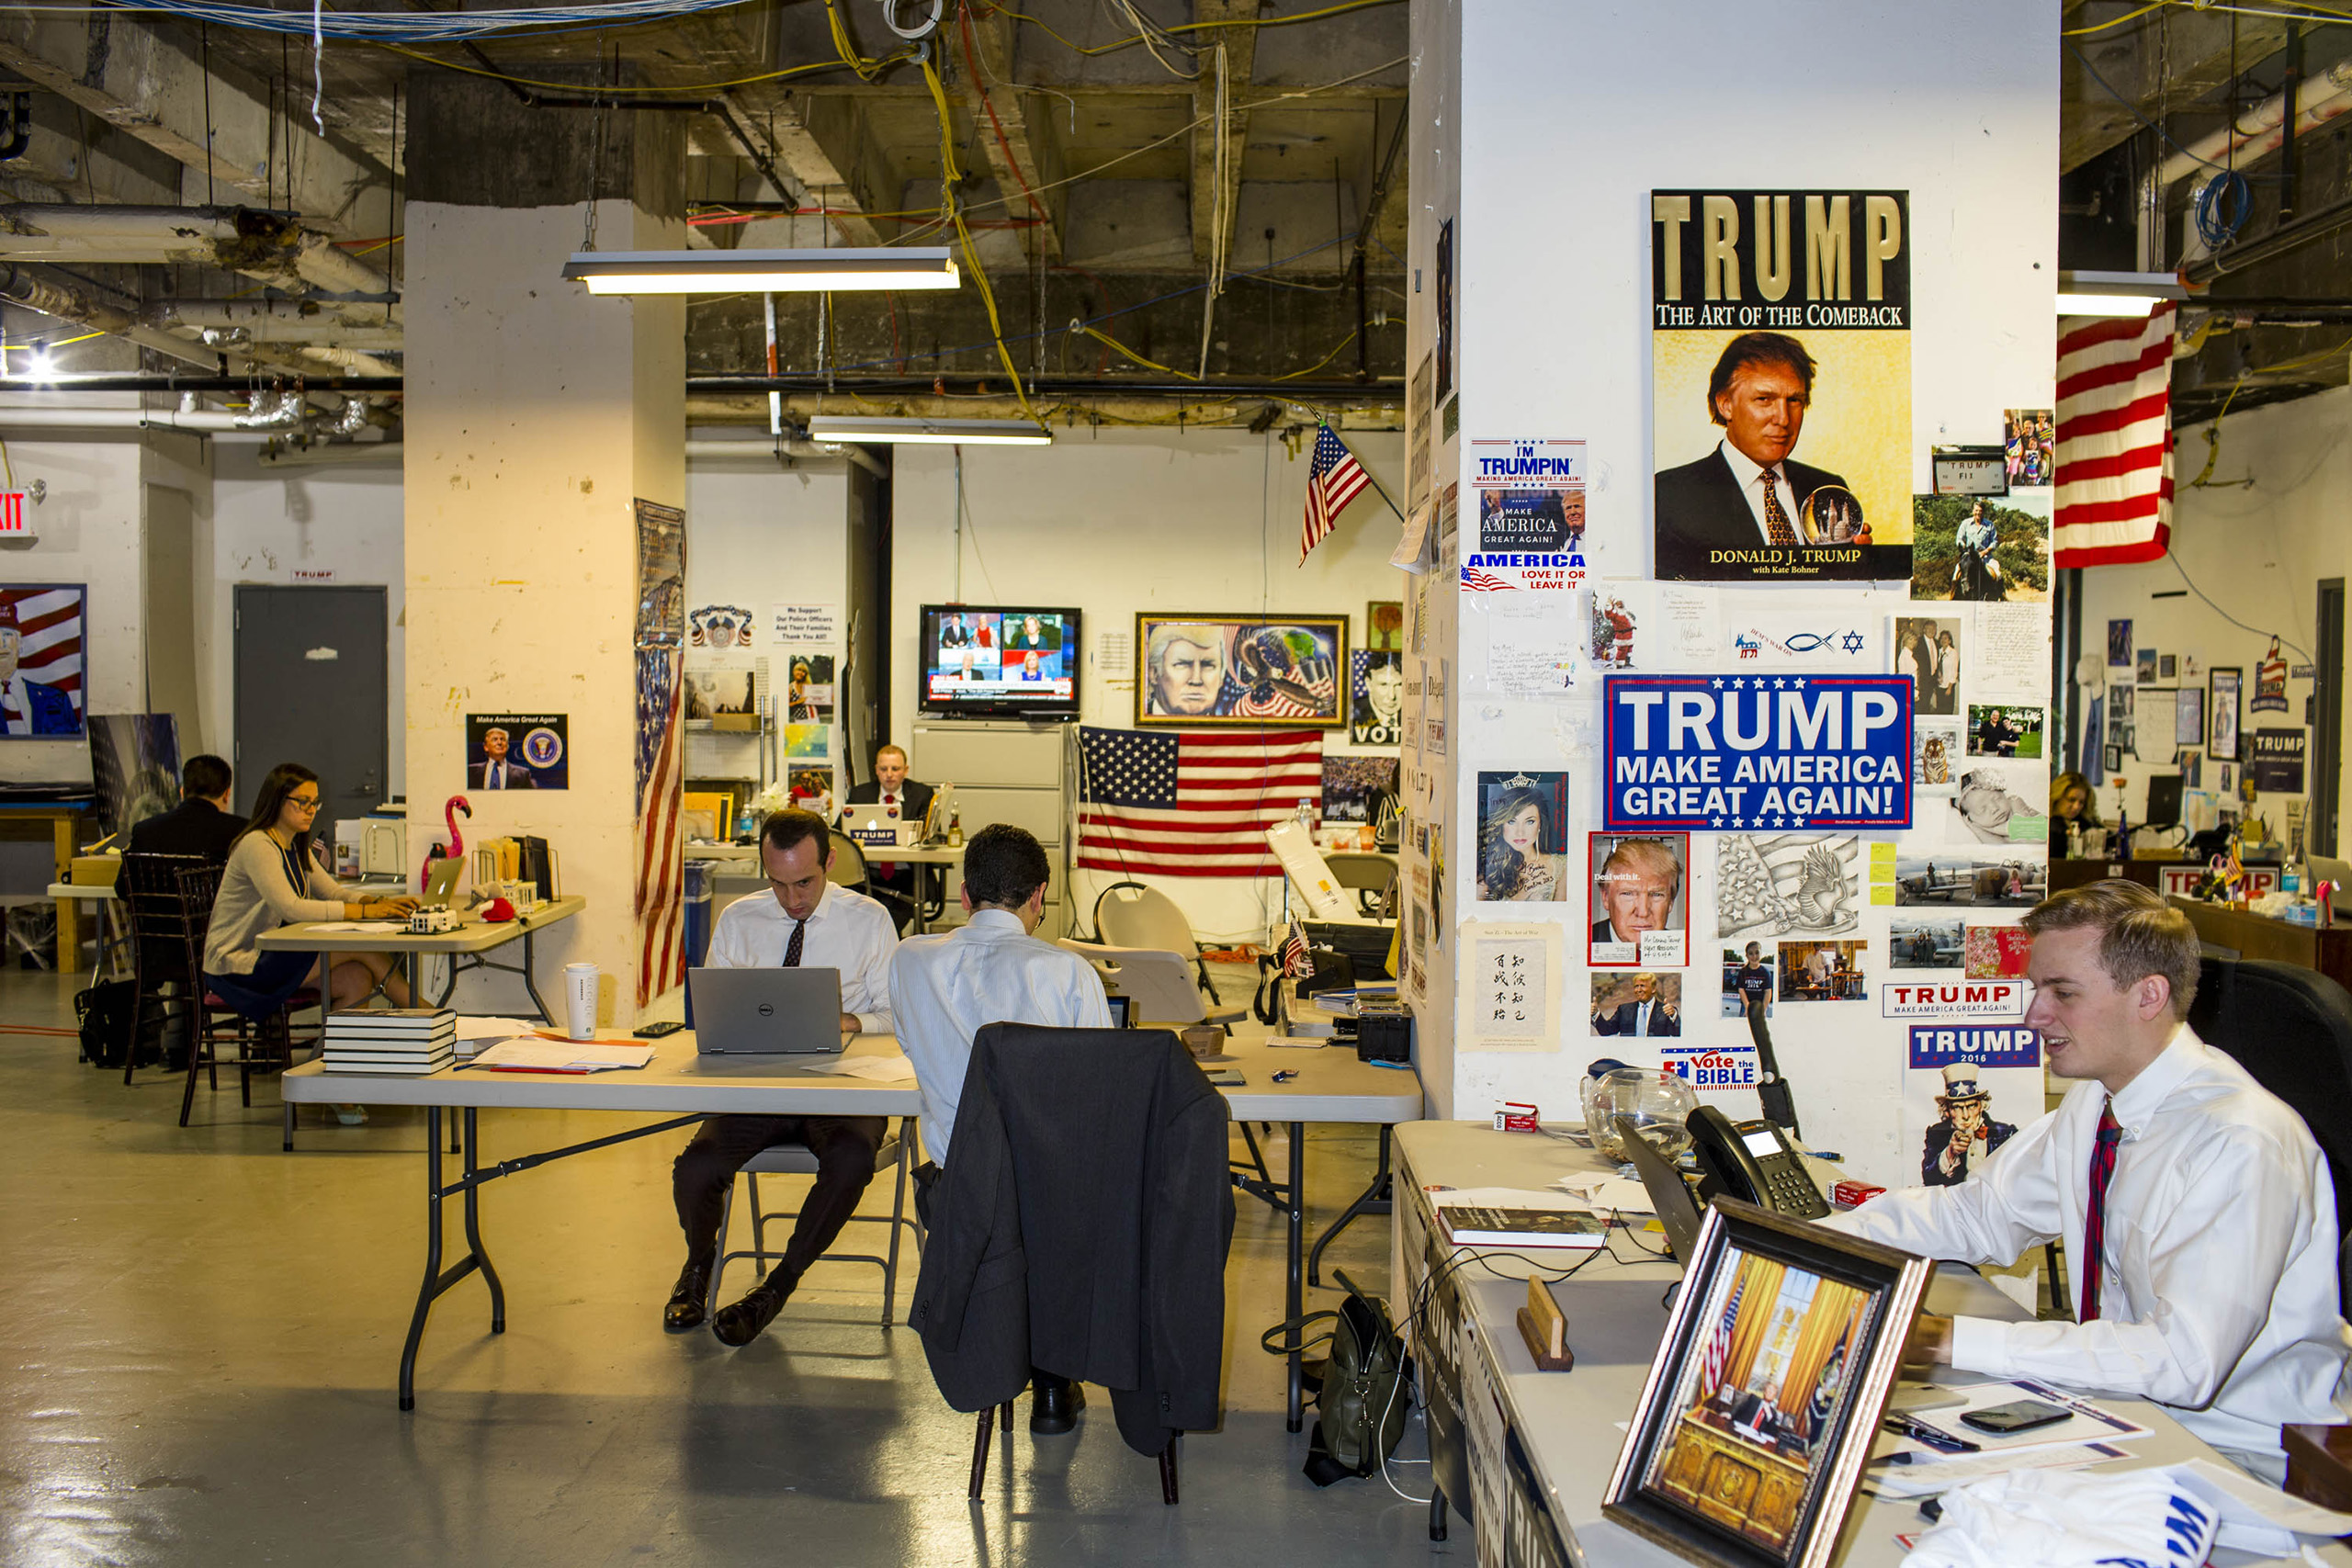 Workers inside the campaign headquarters of Donald Trump on May 24, 2016, in New York City. The office is an unfinished space in Trump Tower that was once a production office for The Apprentice, the headquarters is decorated with campaign memorabilia.